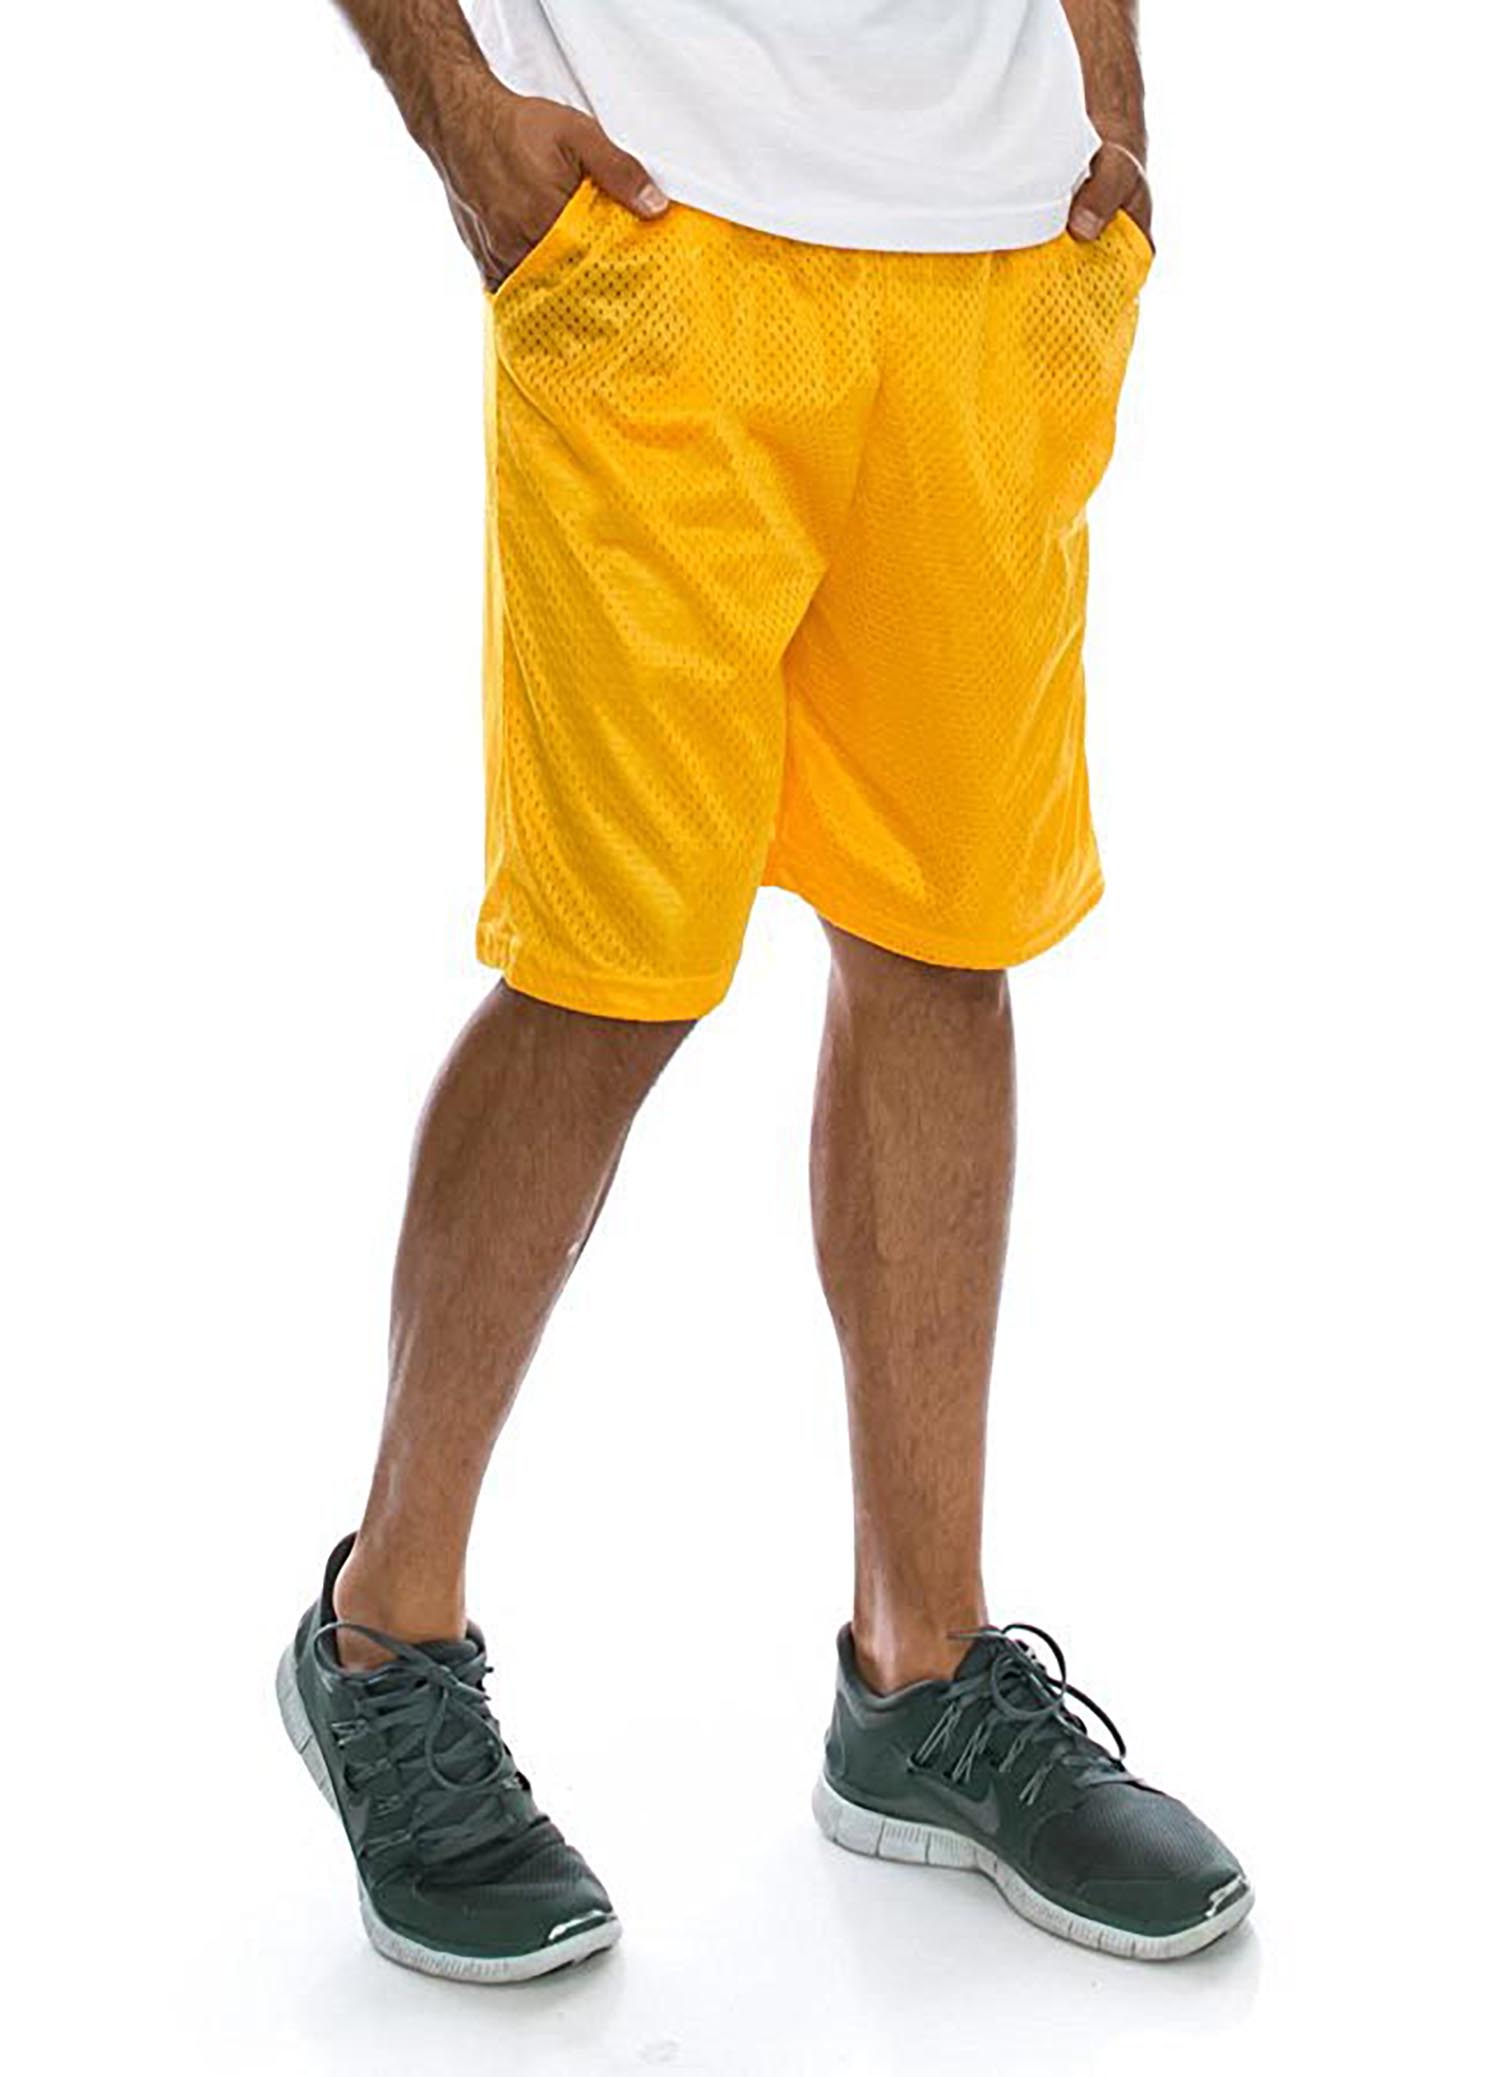 Men's Mesh Basketball Shorts with Pockets Big and Tall Sportswear